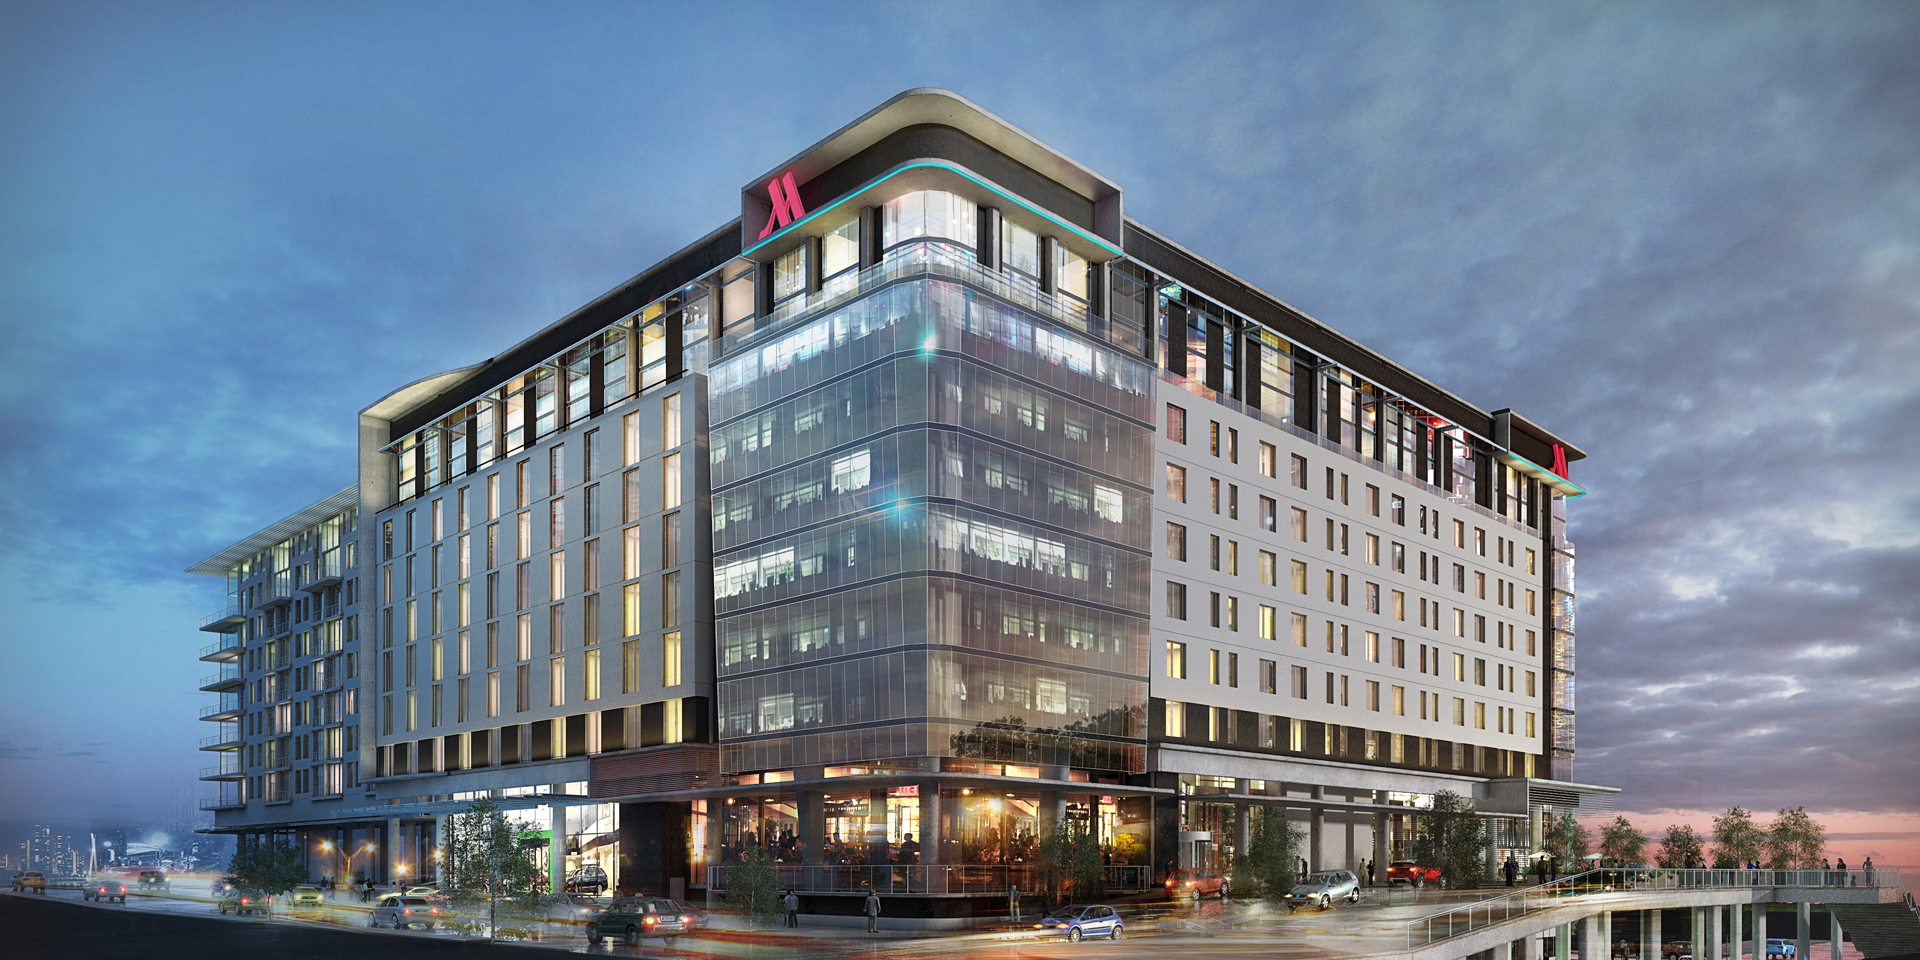 Marriott International to build three new hotel properties in Cape Town in partnership with Amdec Group